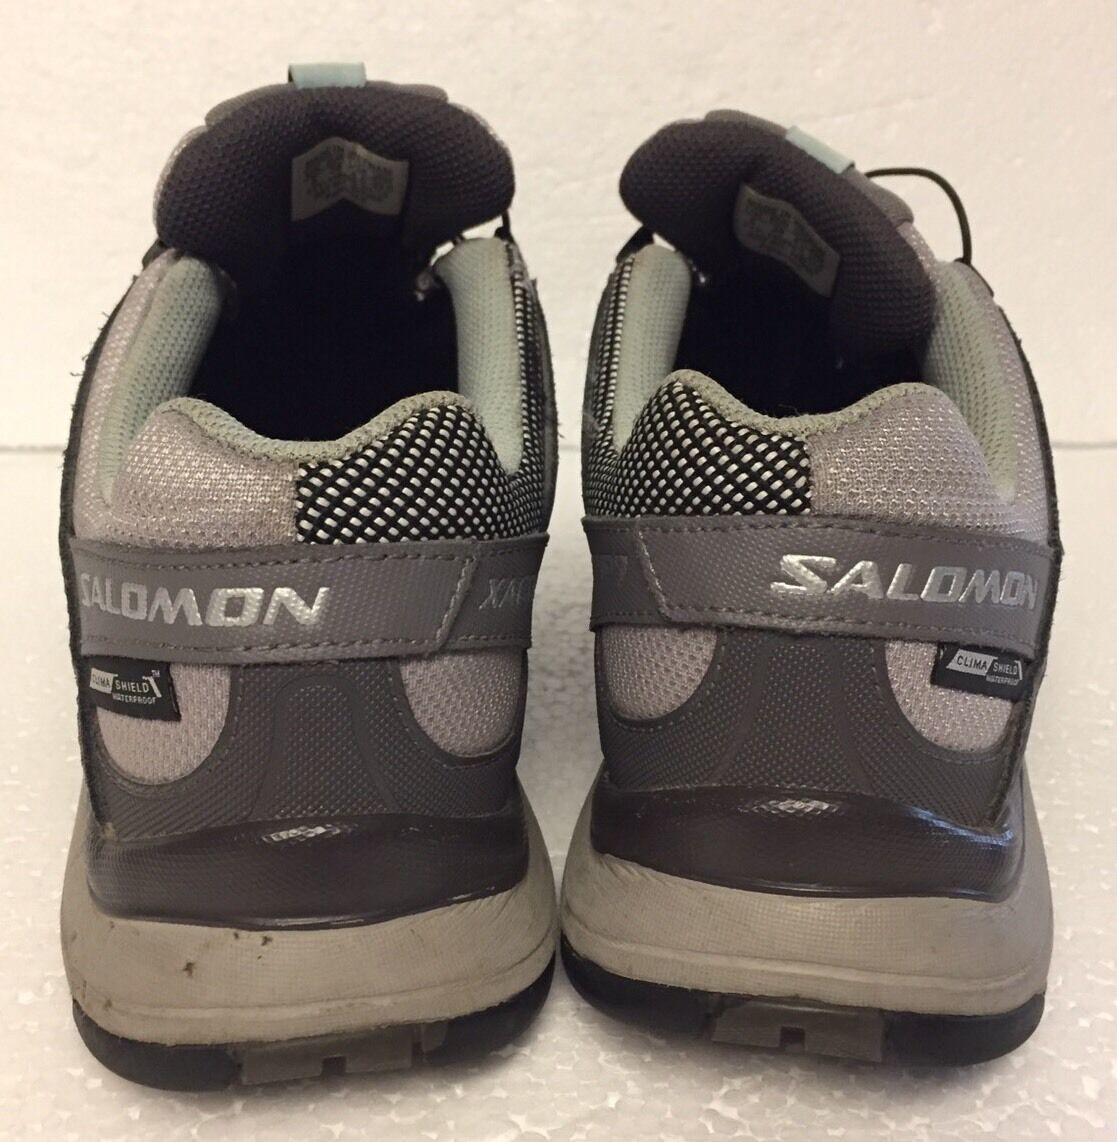 Women's Salomon XA Comp 7 Trail-Running Hiking Athletic Shoes Size 6.5 Gray Teal image 4